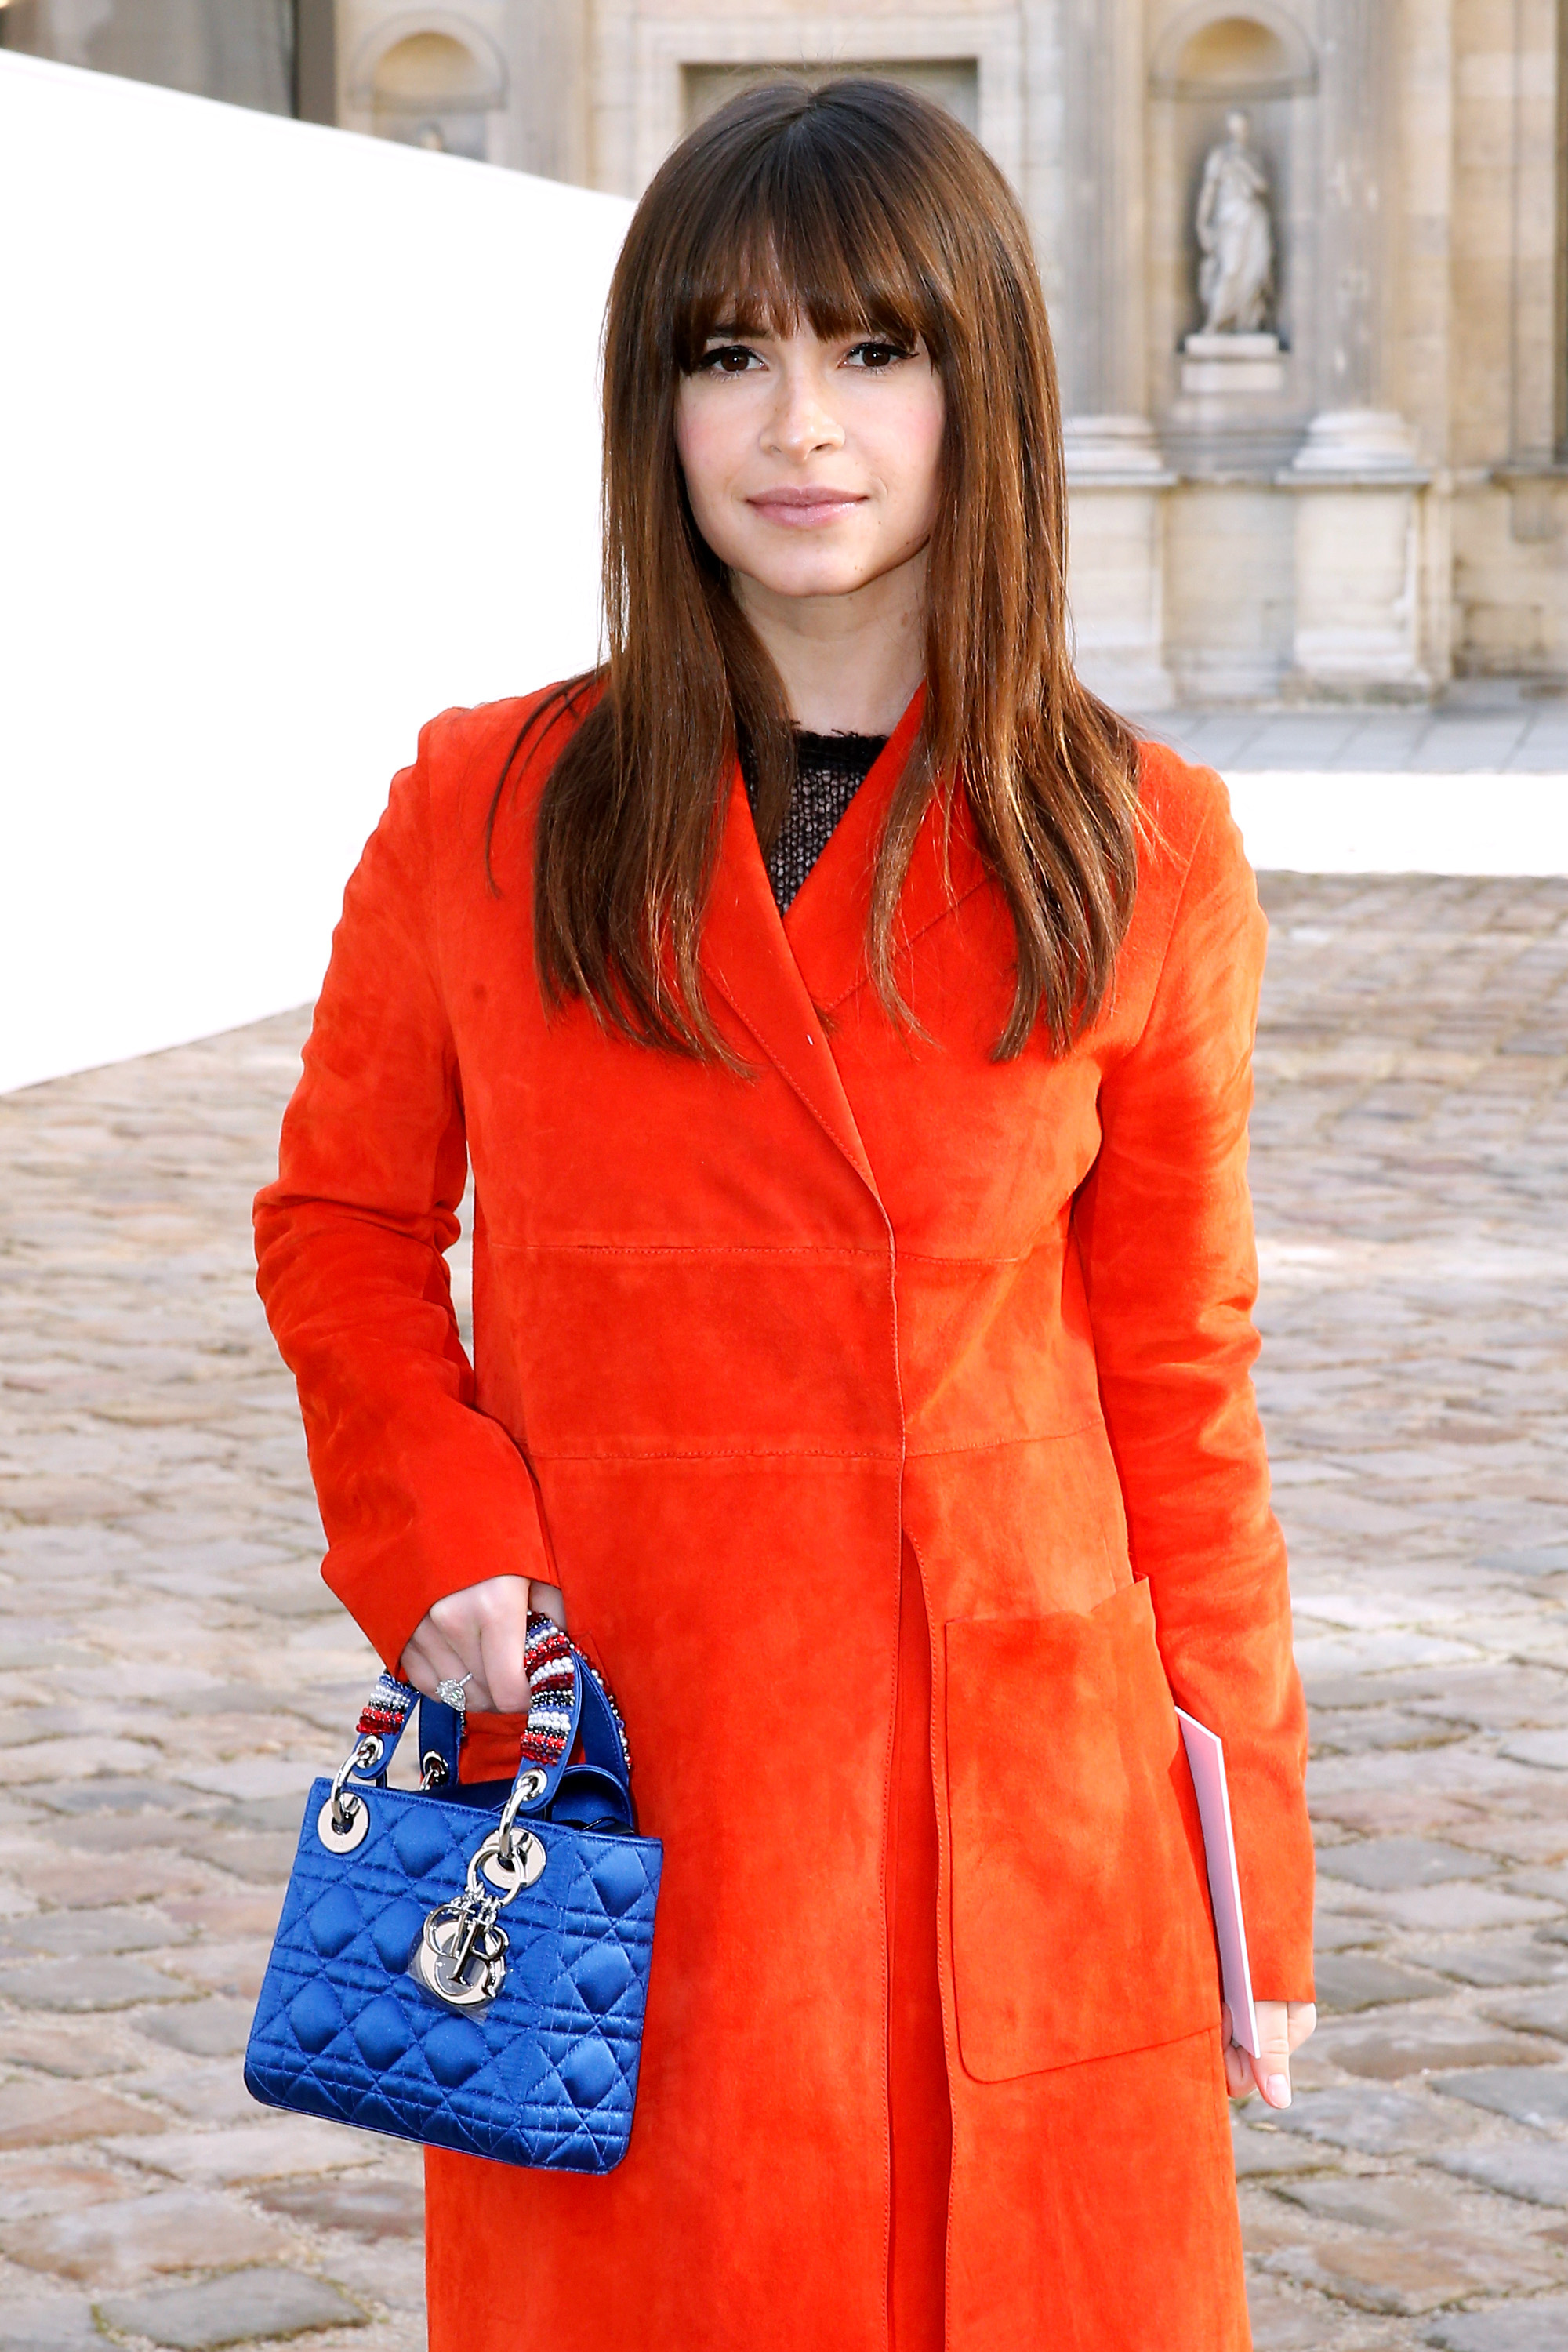 Best dressed Paris Fashion Week